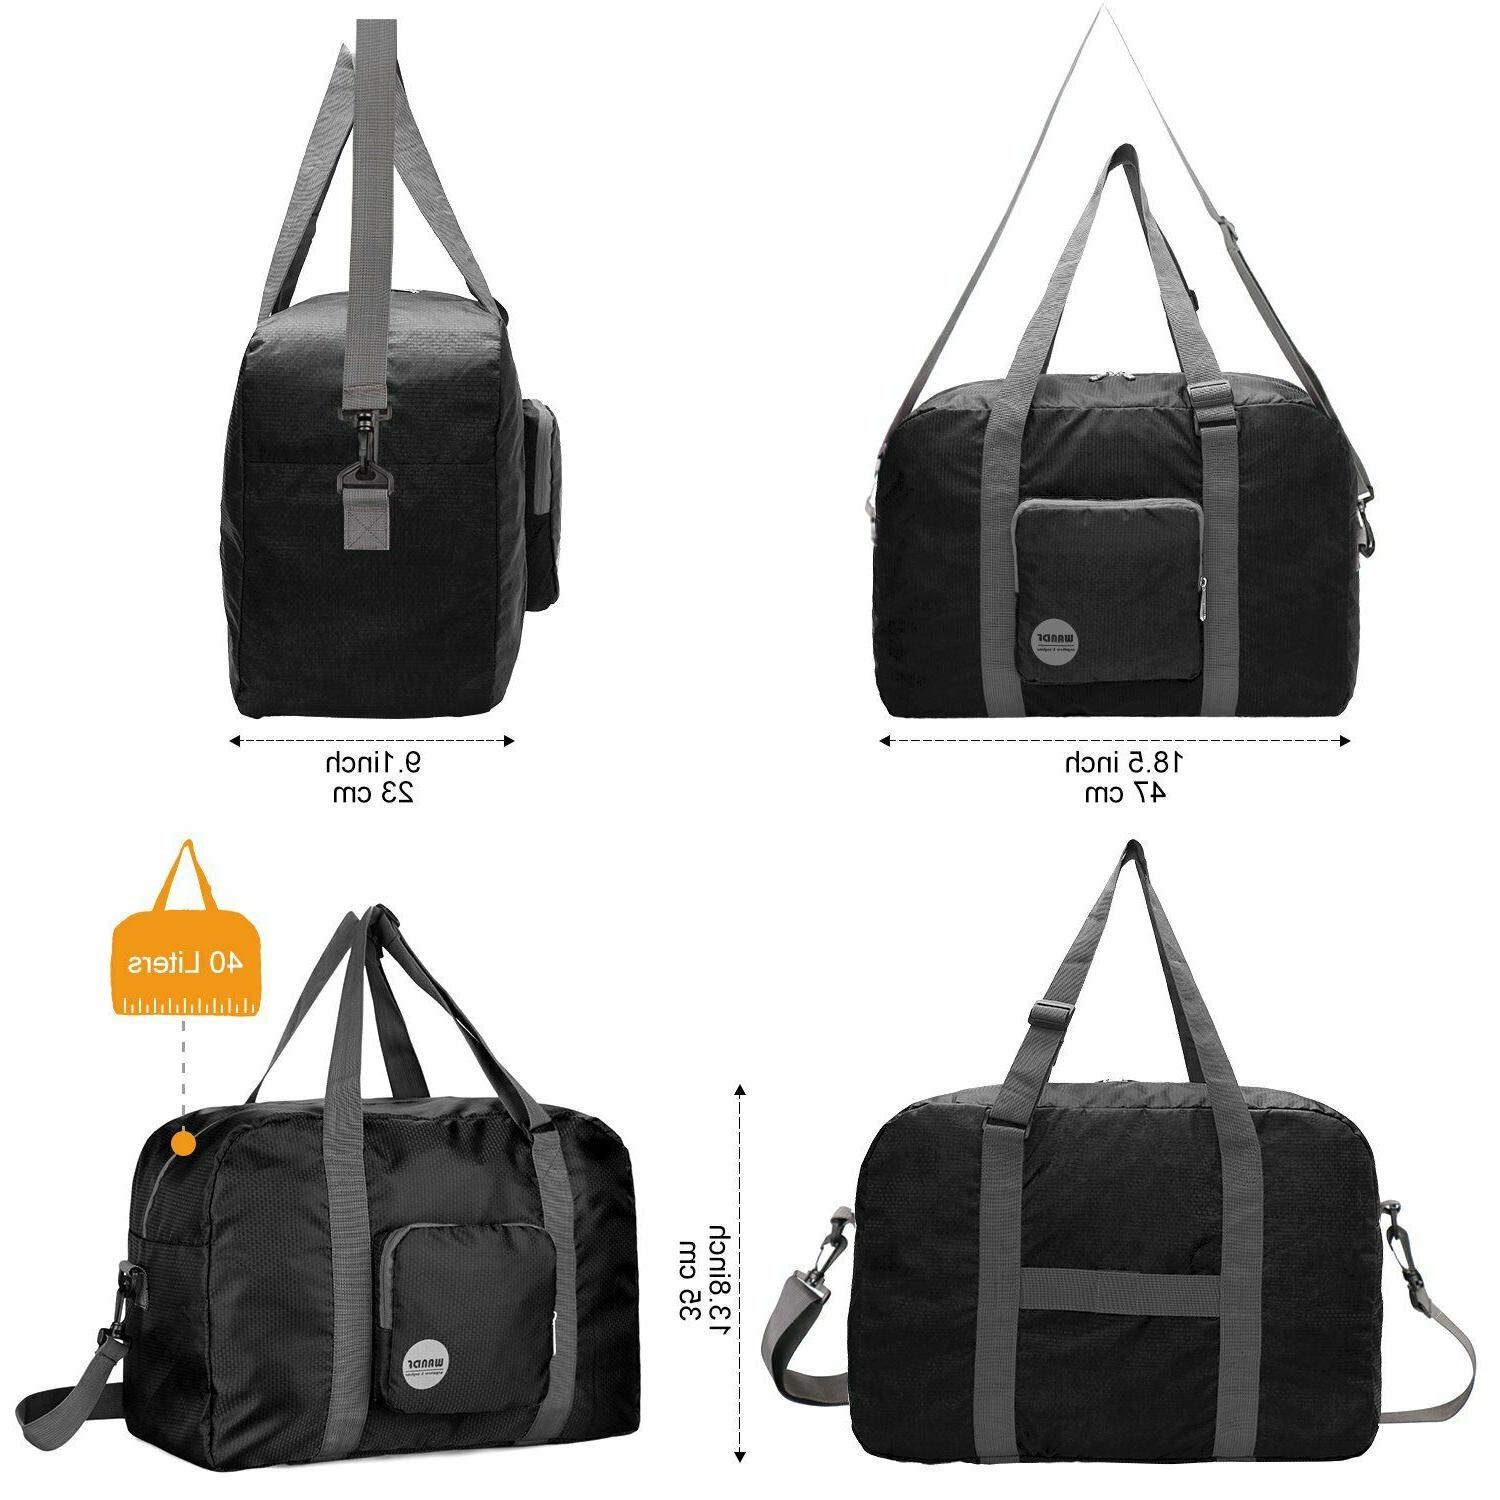 Wandf Foldable Bag Luggage Sports Water Nylon